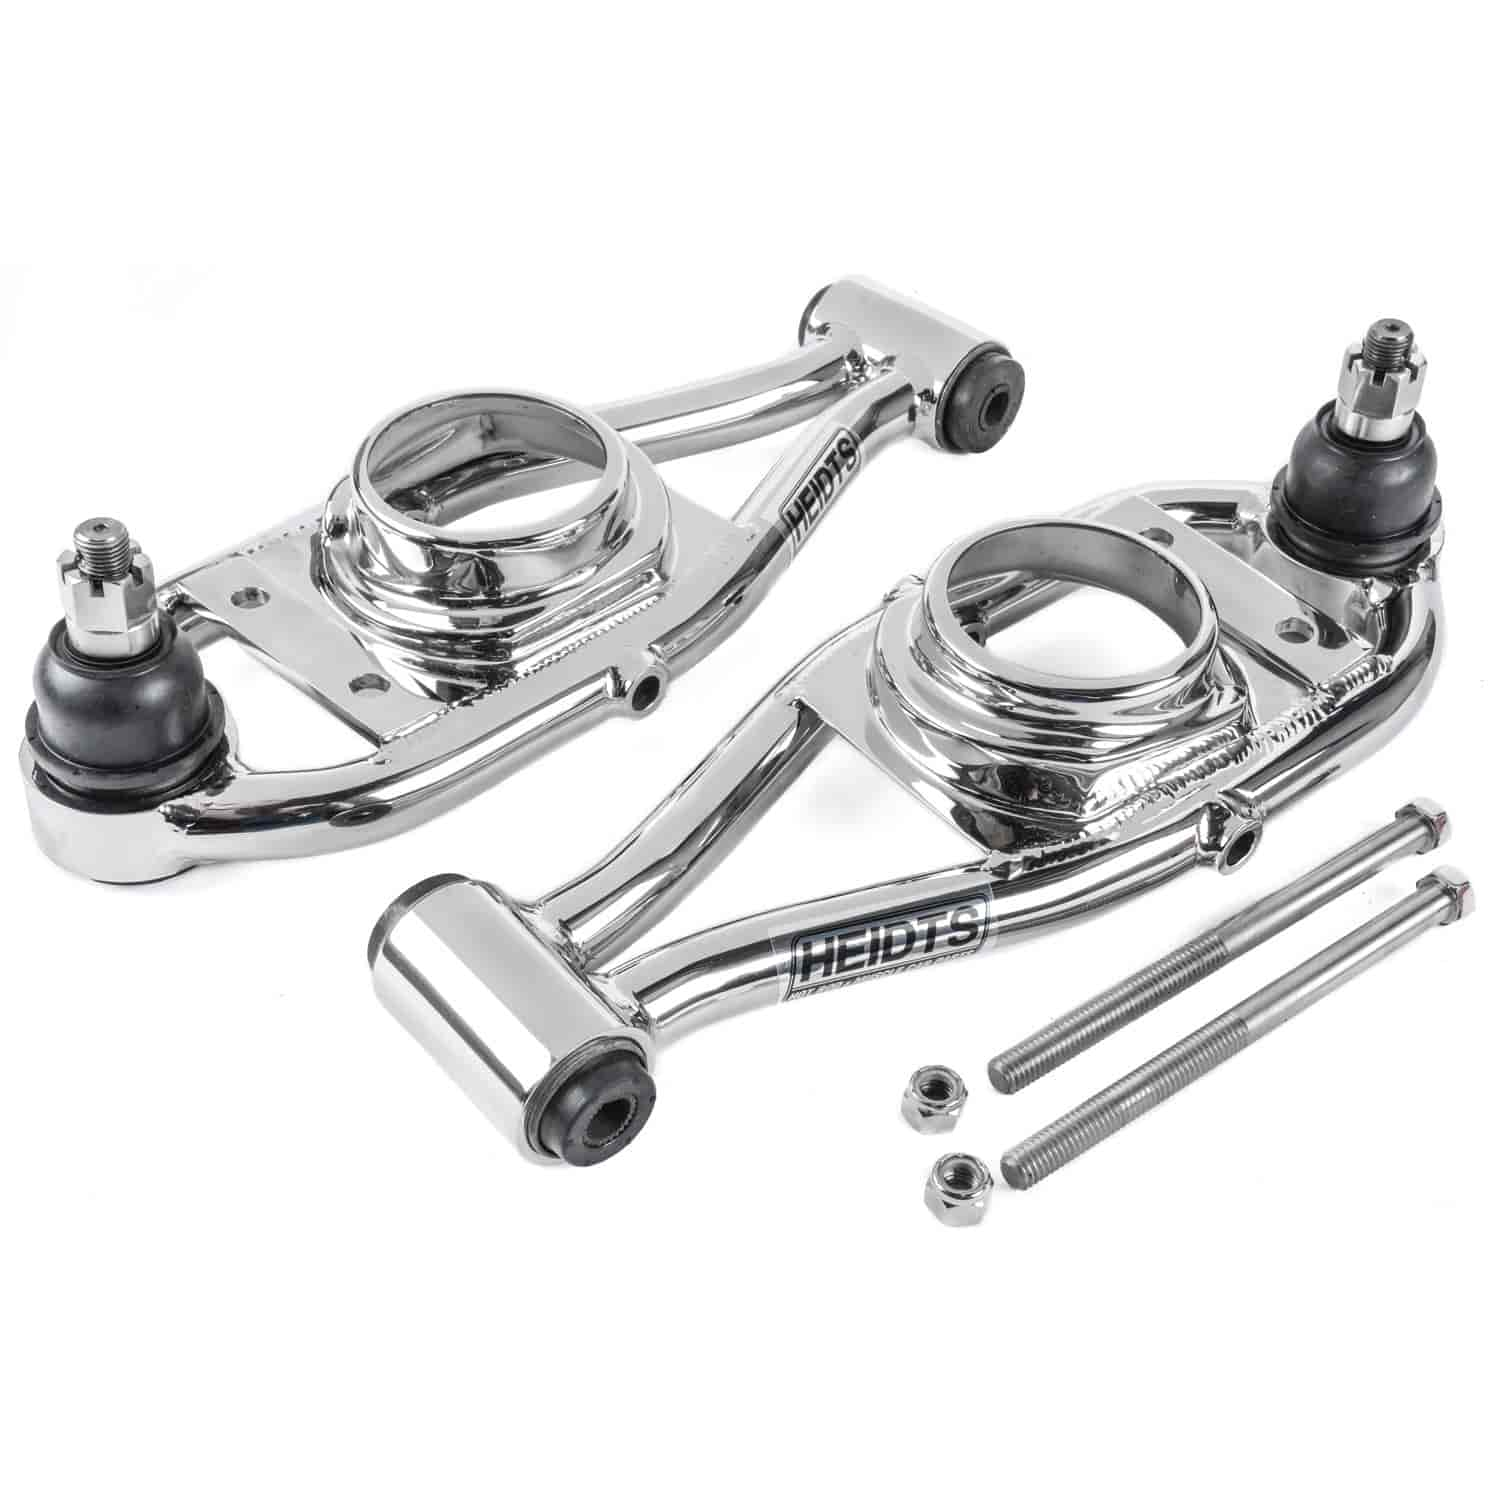 Heidts CA-102-SSM - Heidts Tubular Stainless Steel Upper and Lower Control Arms